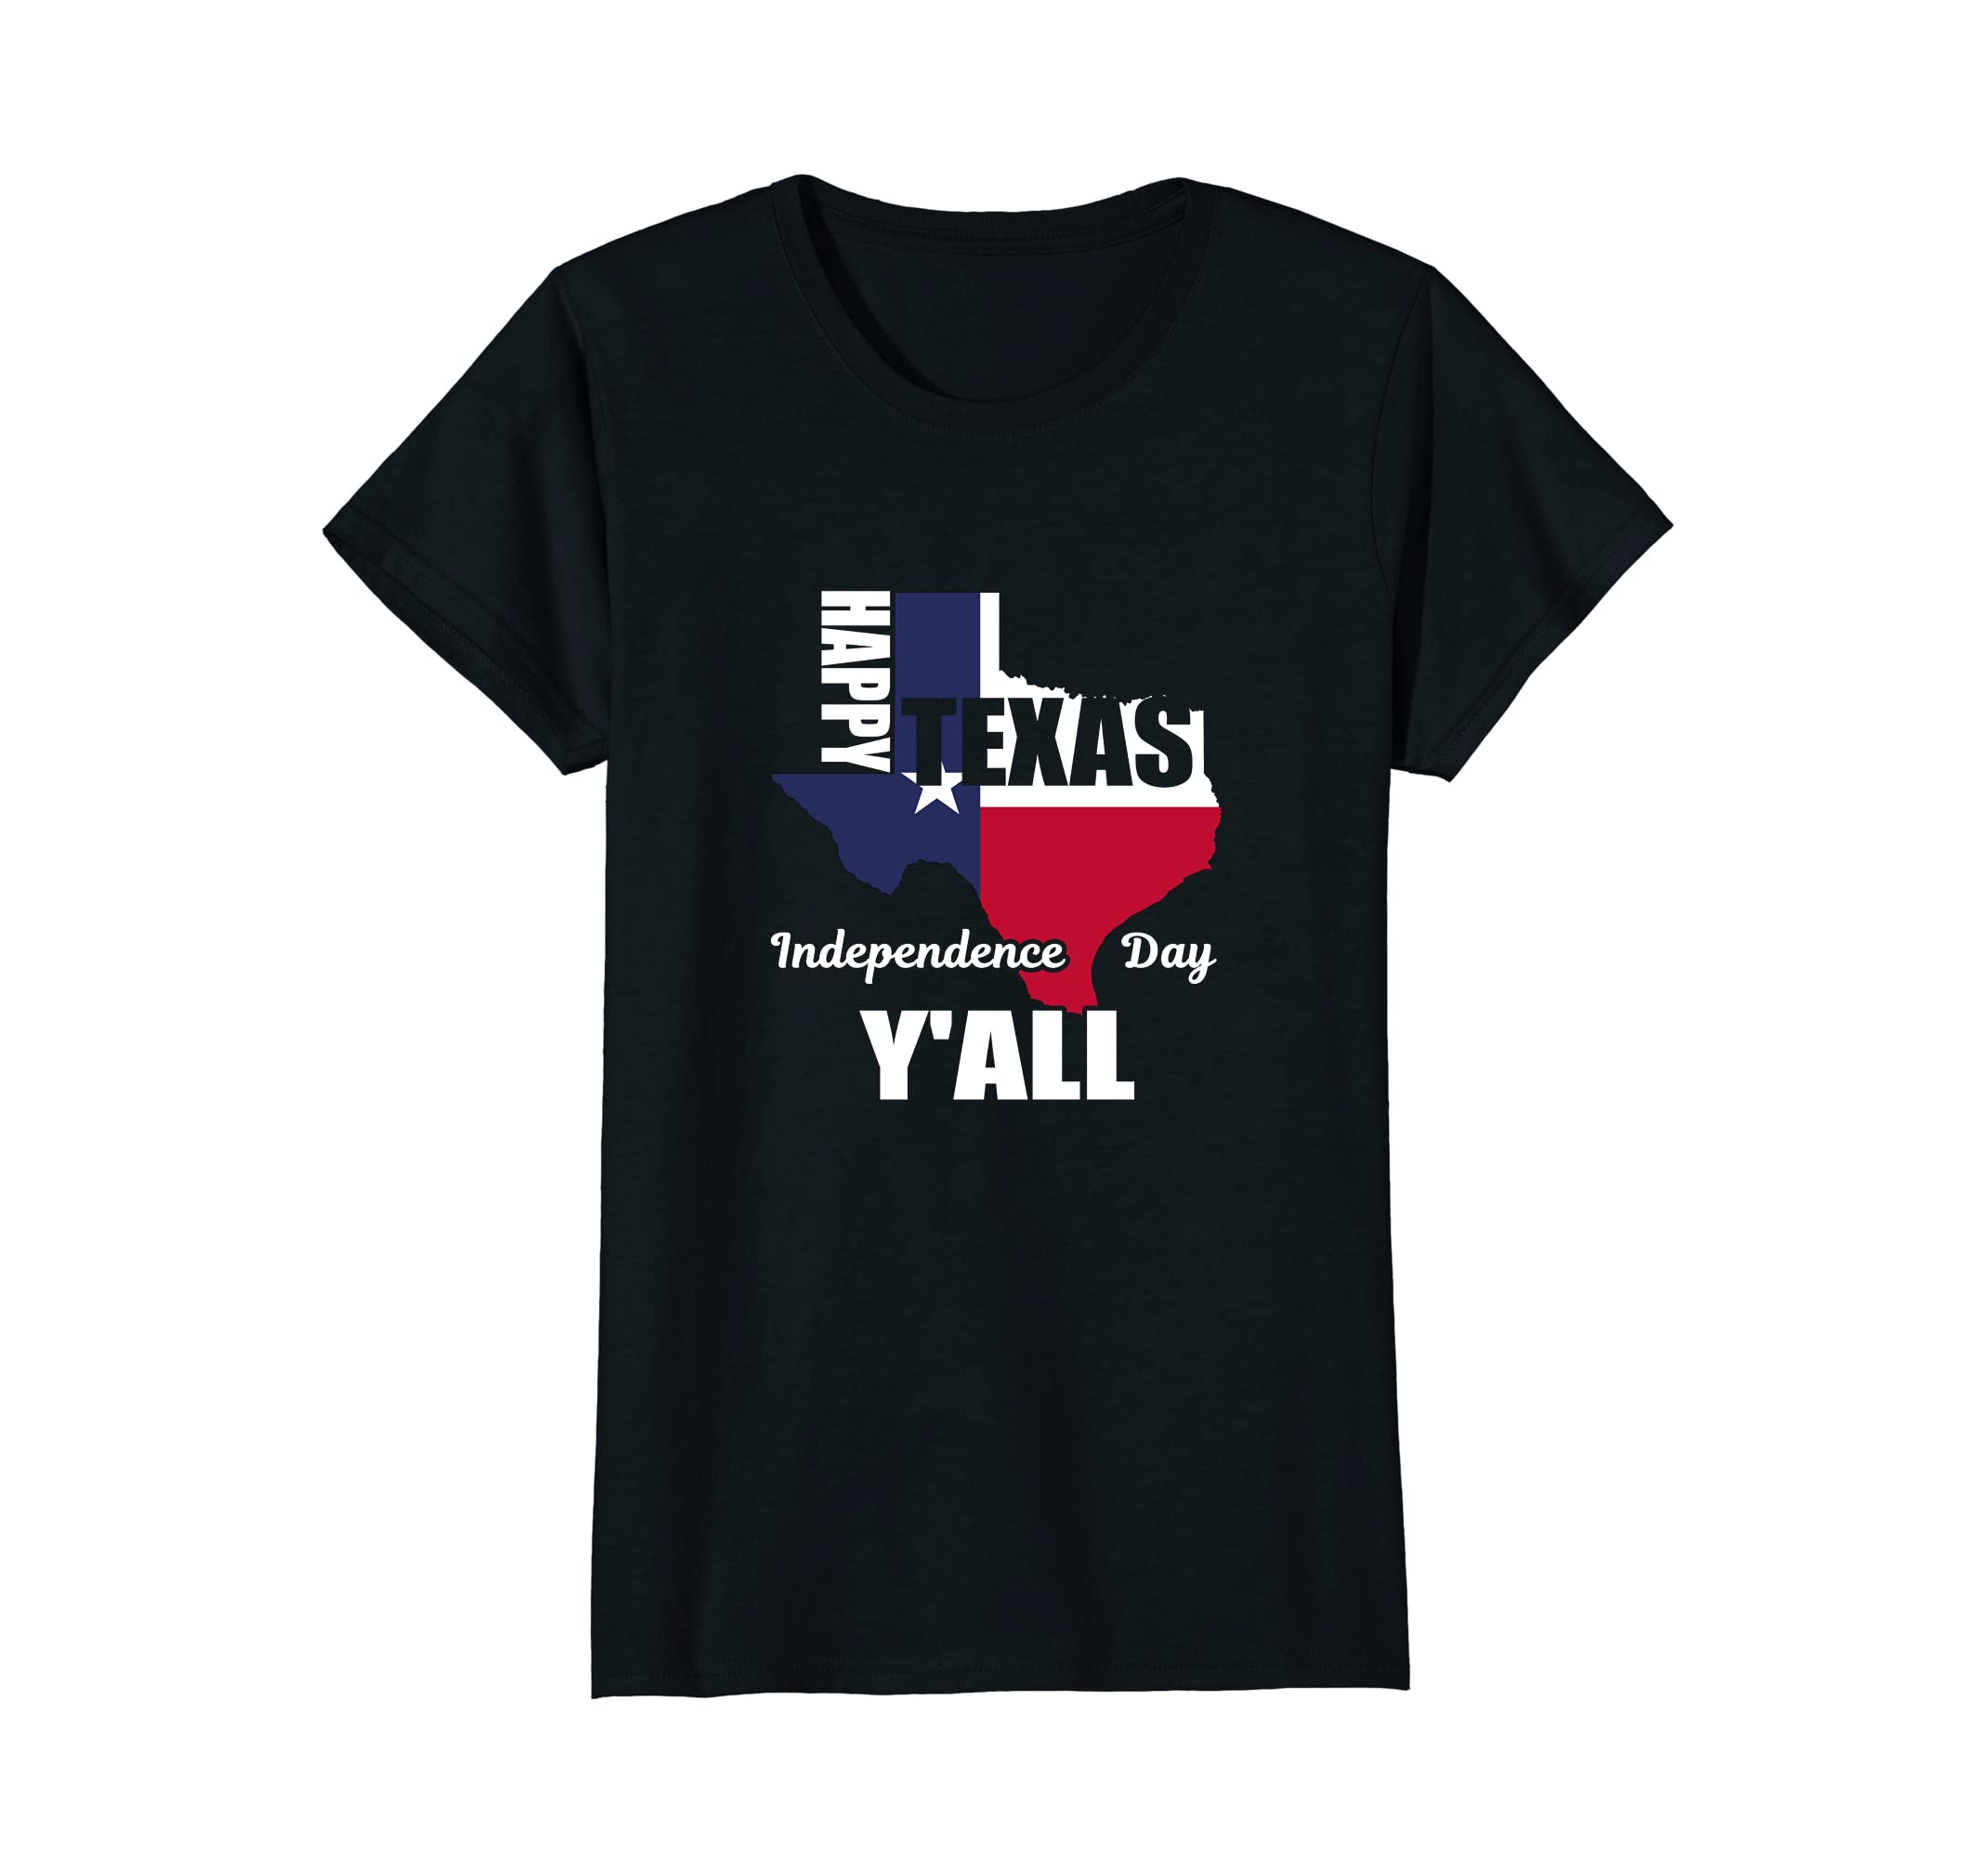 fbecfcf6 Amazon.com: Happy Texas Independence Day Y'all T-Shirt | USA Cowboy ...